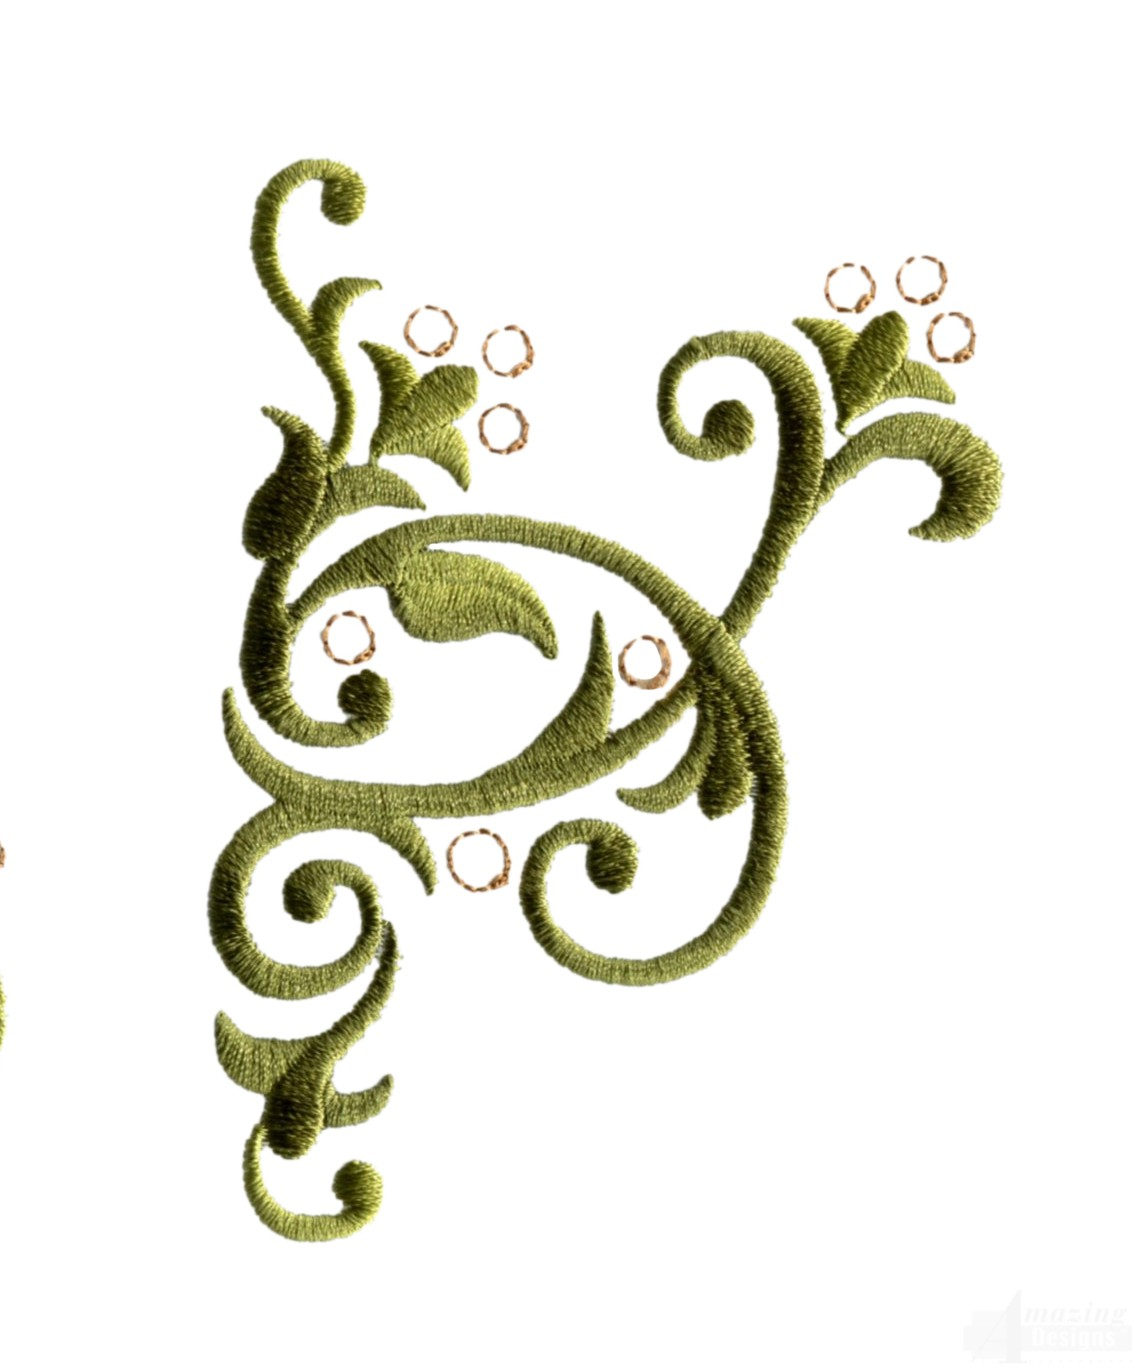 bsb127 baroque swirl 27 embroidery design